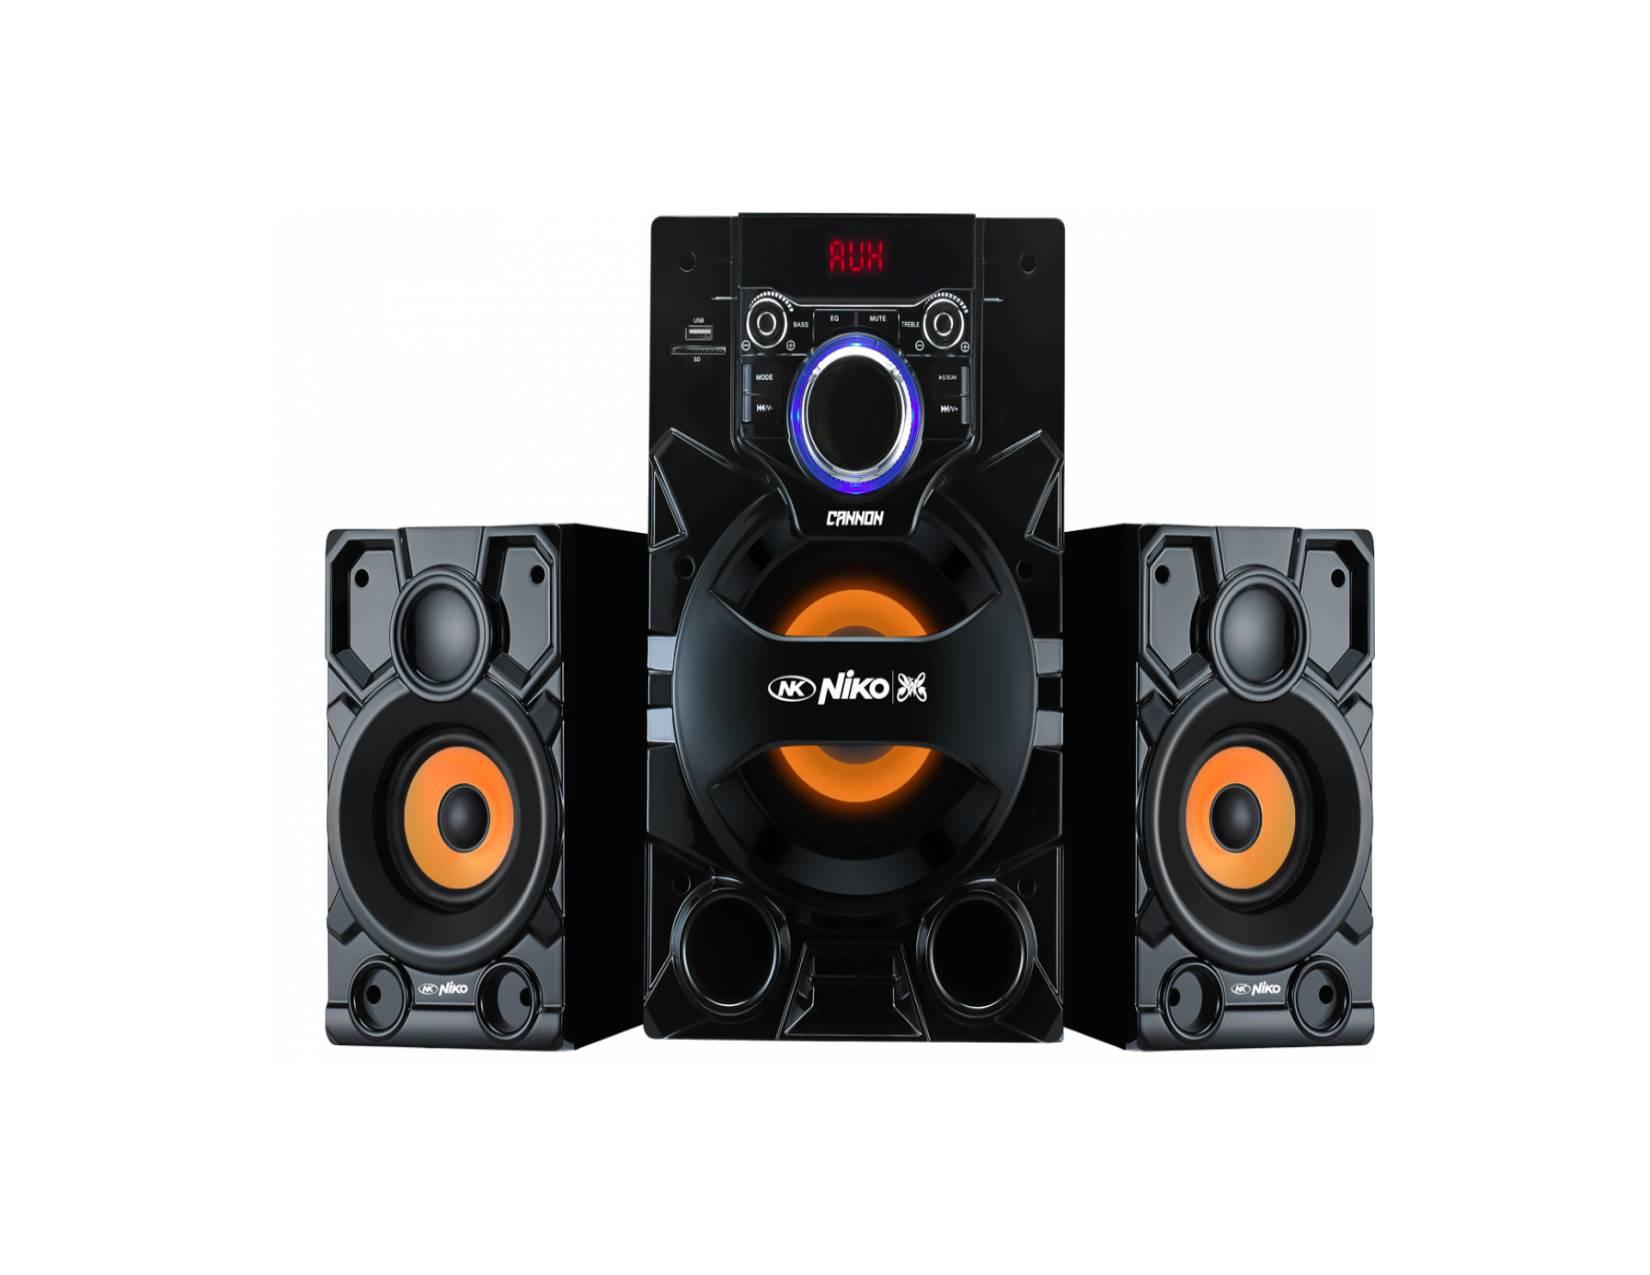 Niko Canon Slank Speaker Aktif Multimedia 105 Watt Dengan Bluetooth